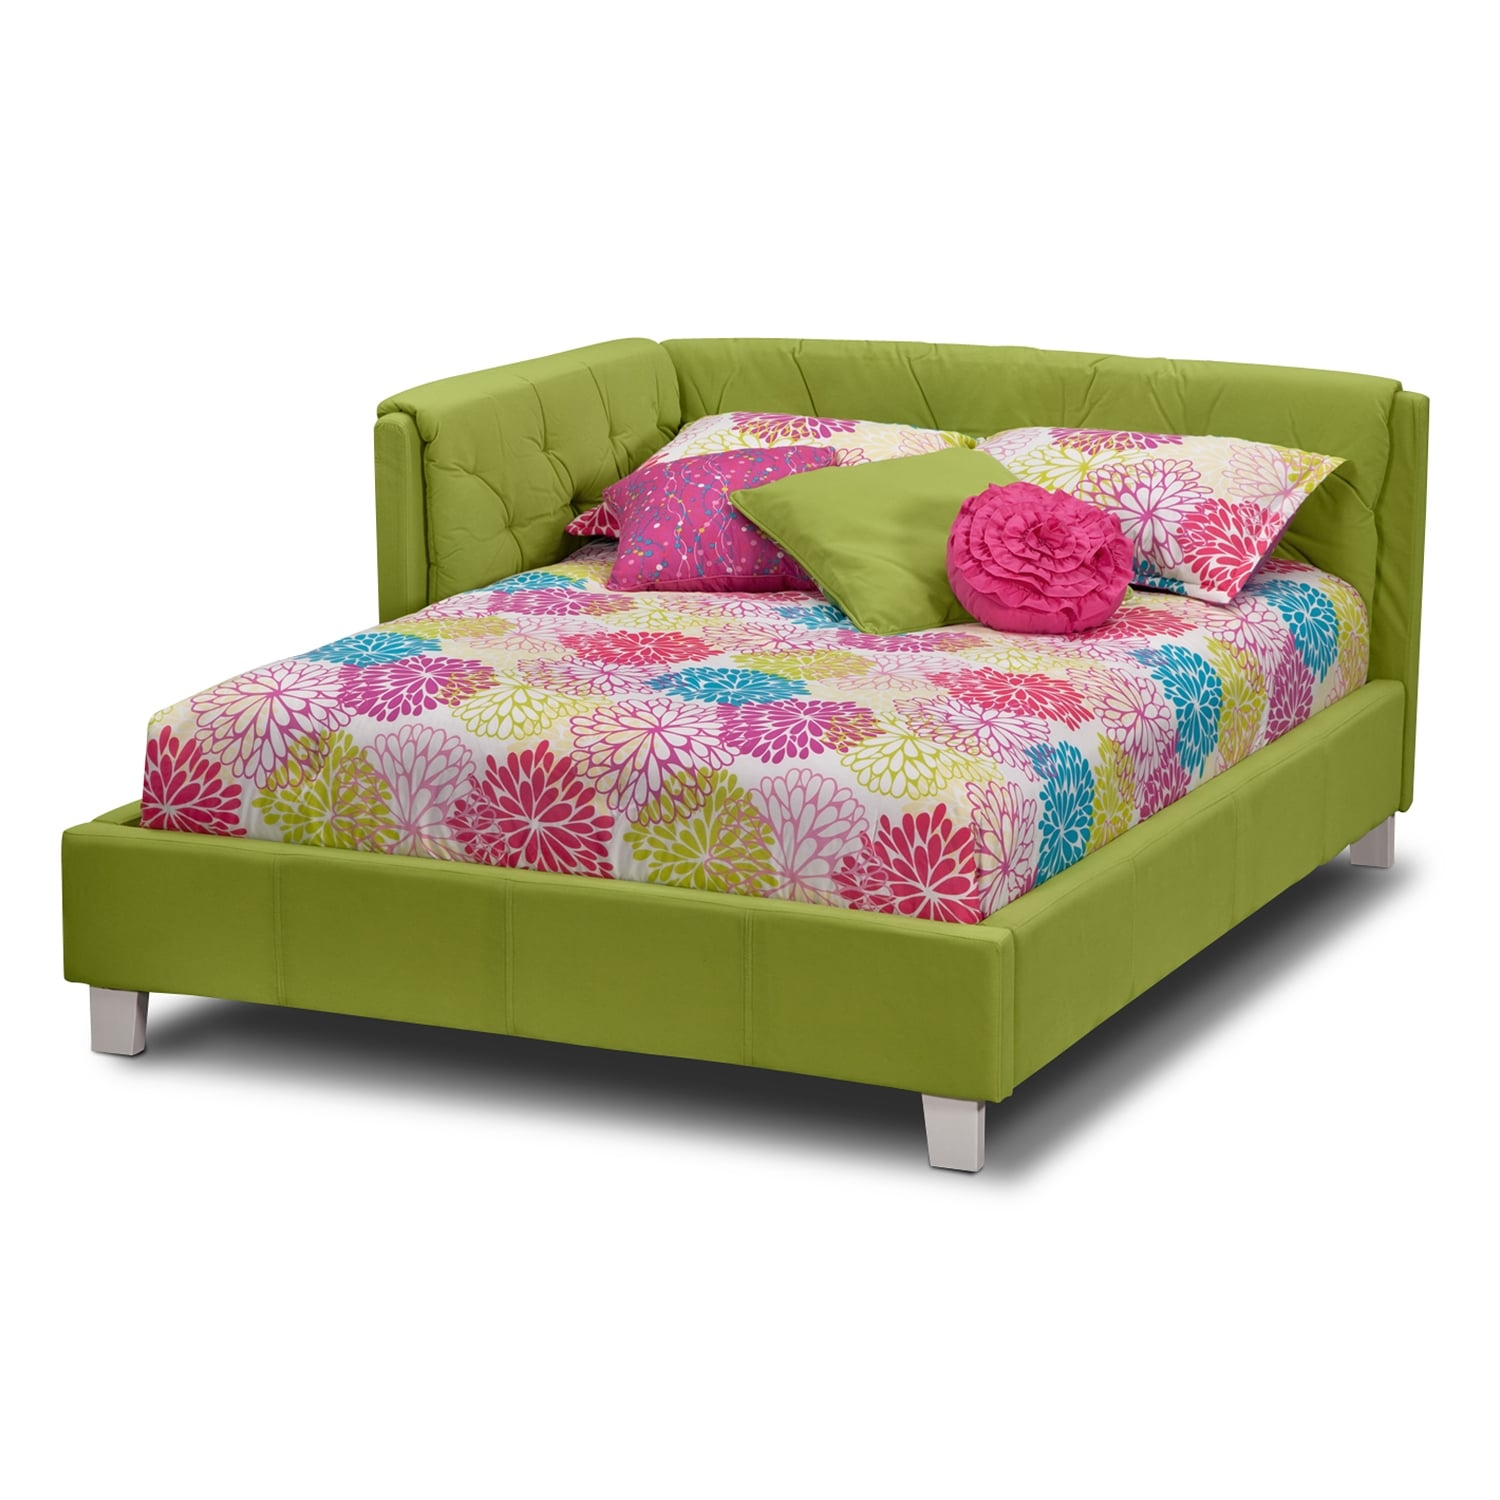 Jordan Ii Full Corner Bed Value City Furniture